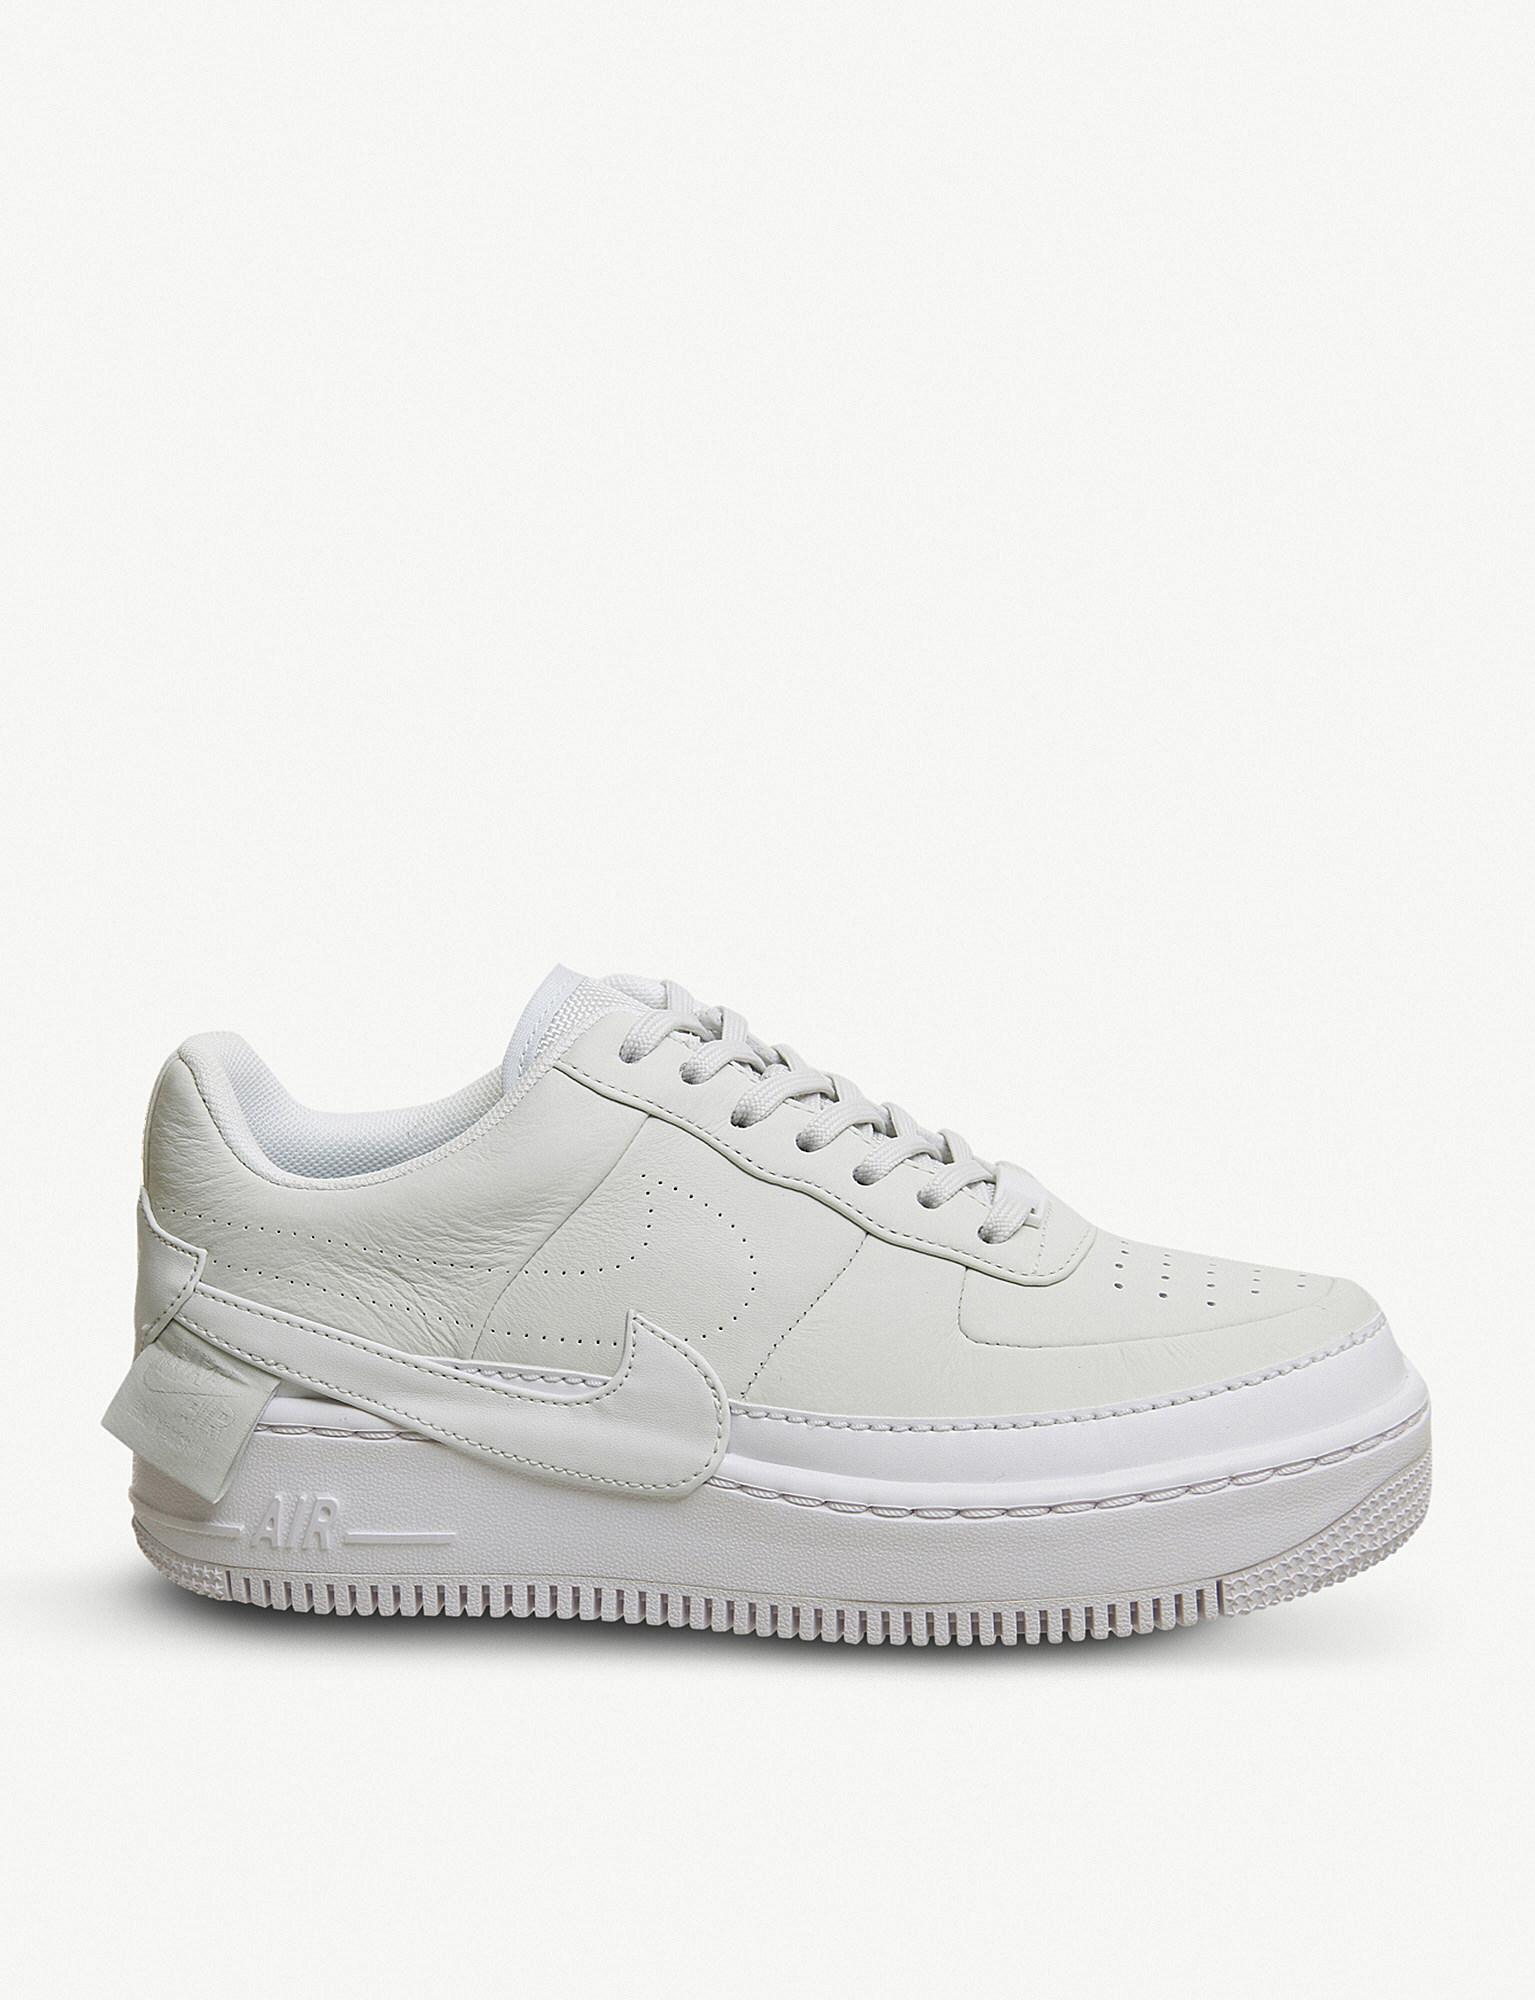 f82b854e66aea Lyst - Nike Air Force 1 Jester Xx Leather Trainer in White